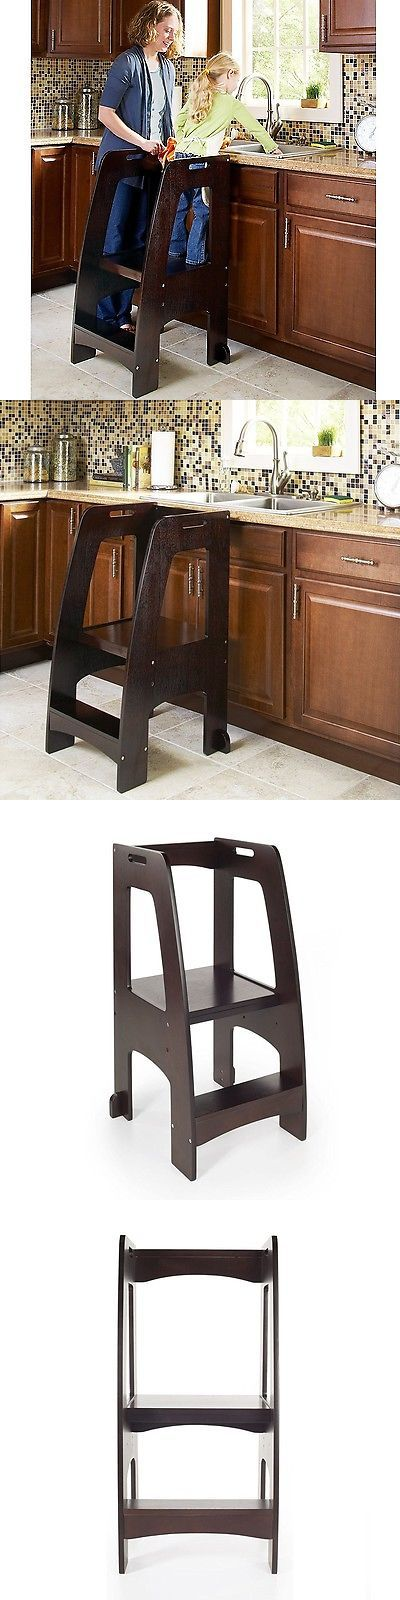 Stools 134650: Guidecraft Step Up Kitchen Helper, Espresso -Supports Up To 200 Lbs., G97327 New -> BUY IT NOW ONLY: $134.36 on eBay!